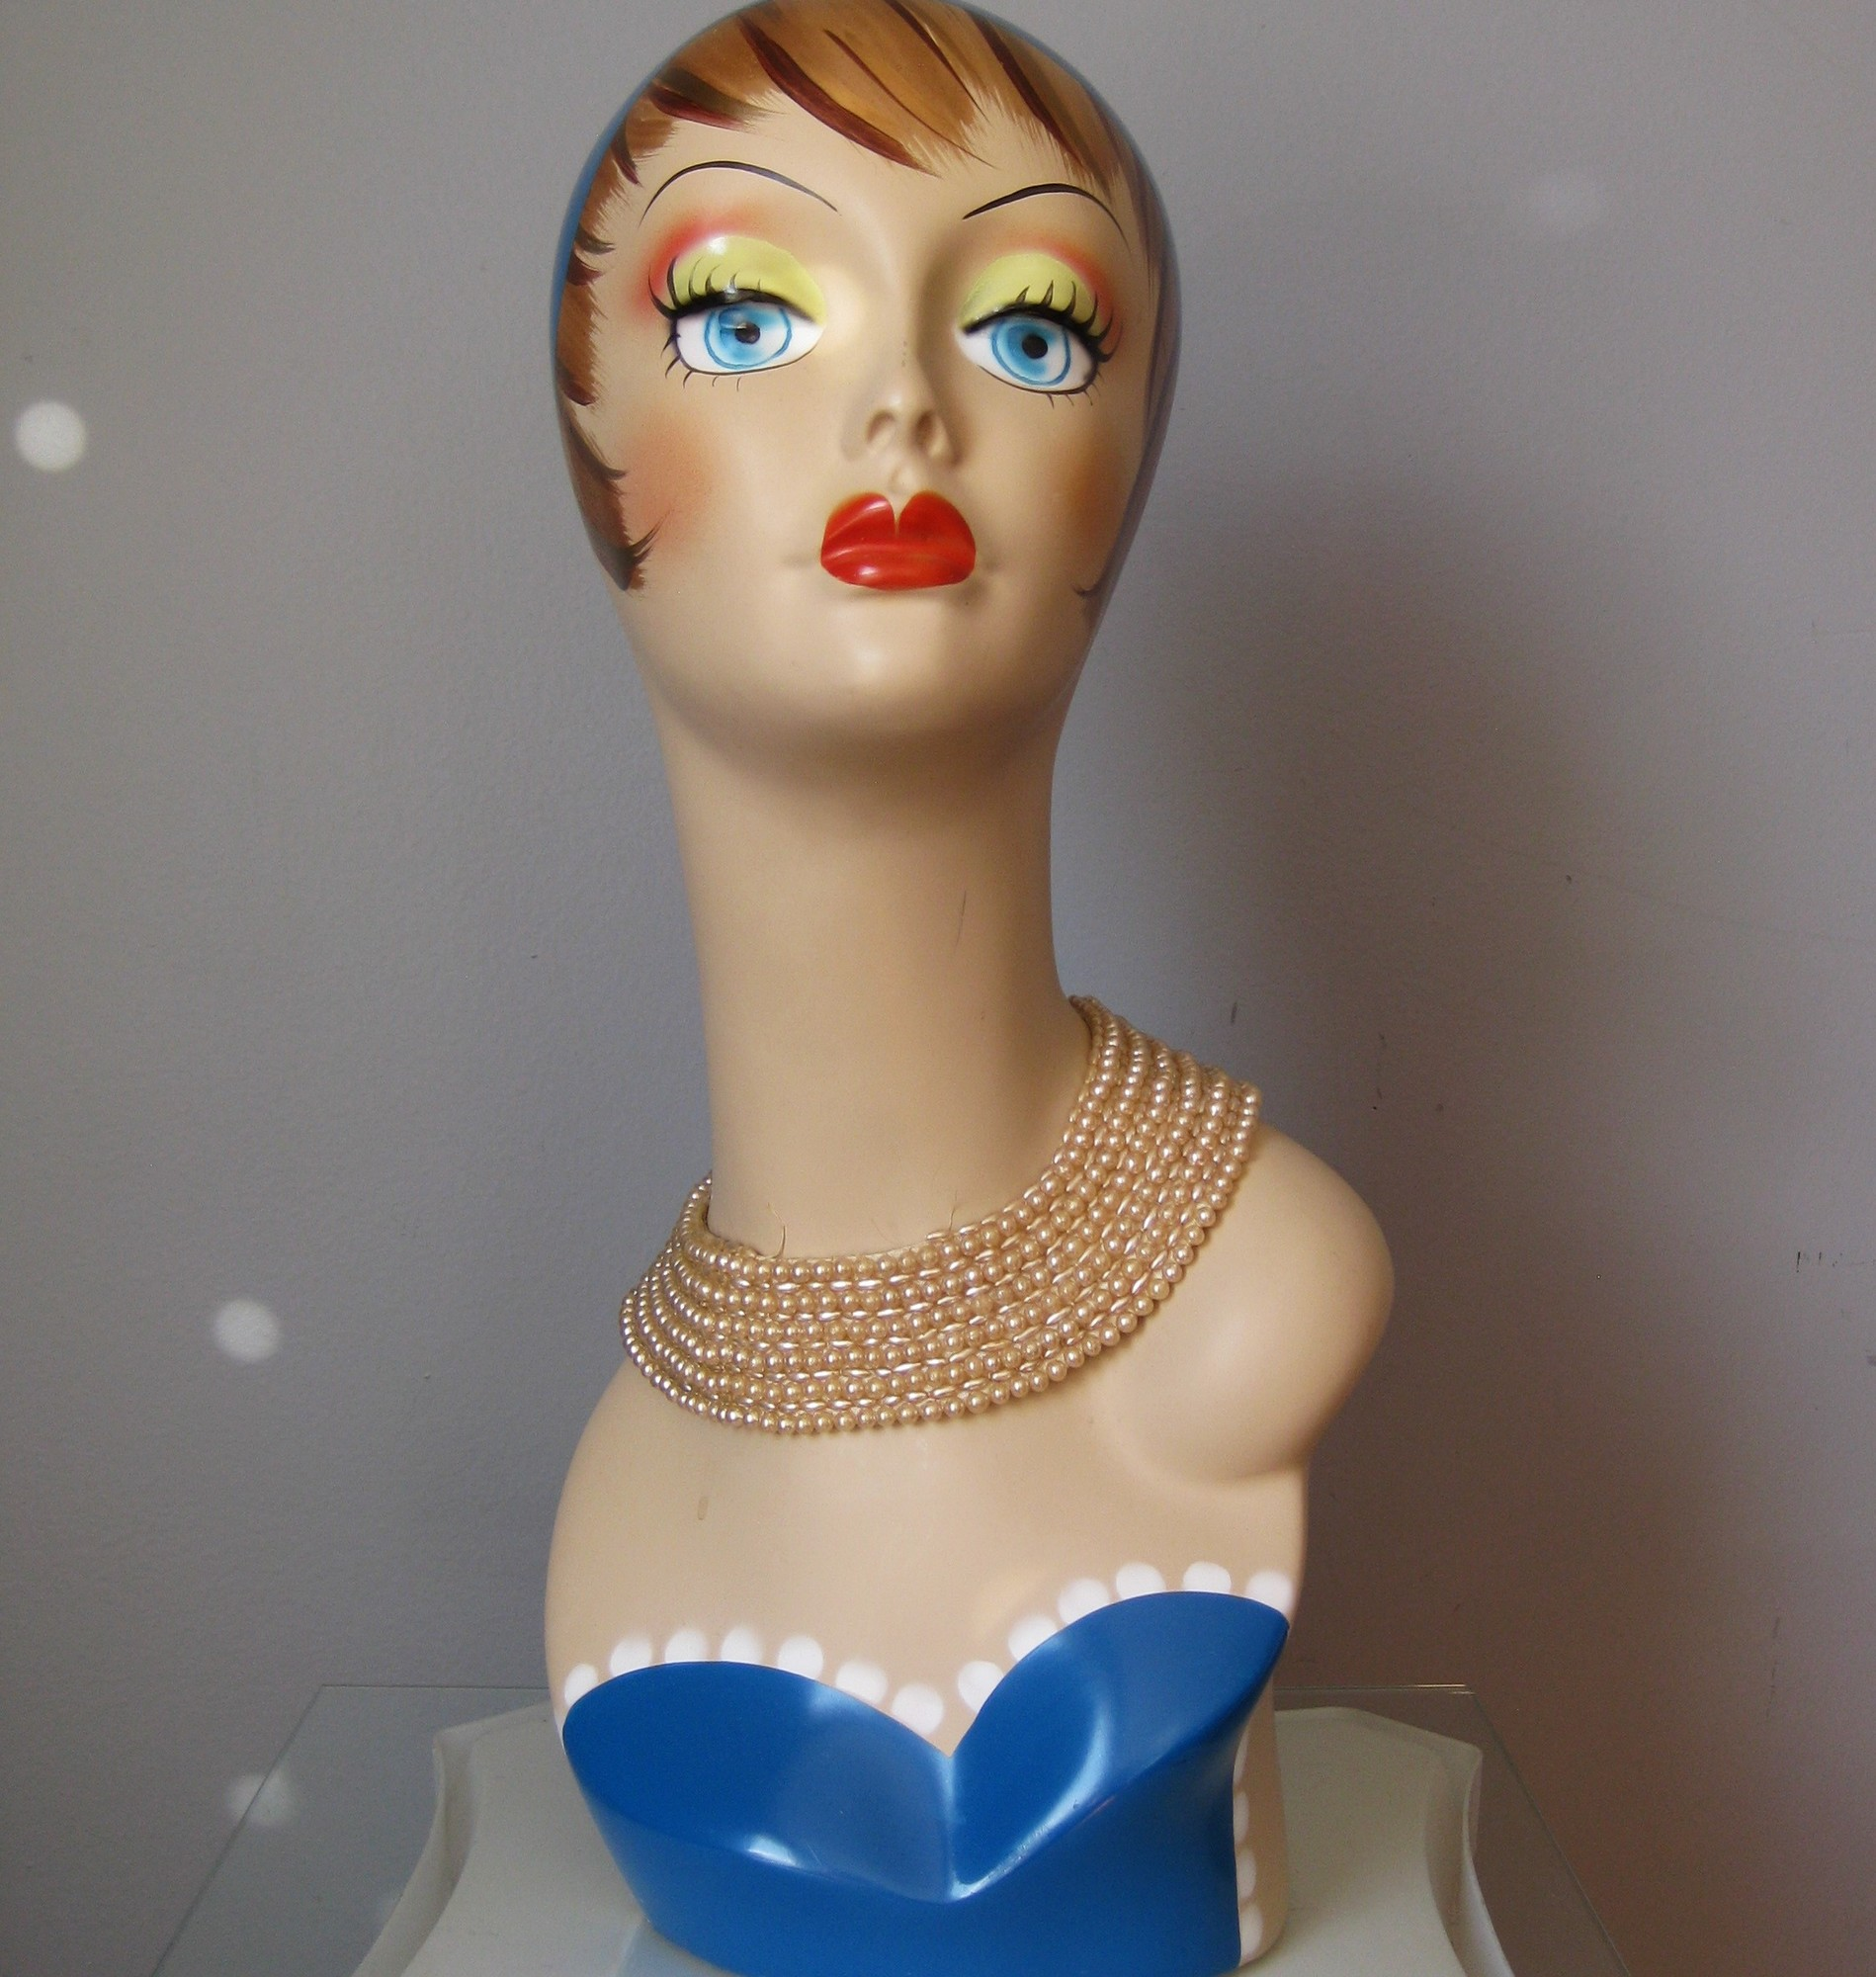 Vintage pearl collar from the 1940s or maybe 1950s.<br /> Wear over a plain top or as choker necklace.<br /> Faux pearls, satin backing.<br /> single hook and eye closure<br /> Great condition, the center of the top row of the longer narrow shaped pearls are missing but the pearls are sewn on in such a way that there won't be any further unraveling.  Some of the pearls have a bit of the finish rubbd off as well.<br /> Please see all the photos.<br /> Length: 15.75in<br /> <br /> Thanks for looking!<br /> #560